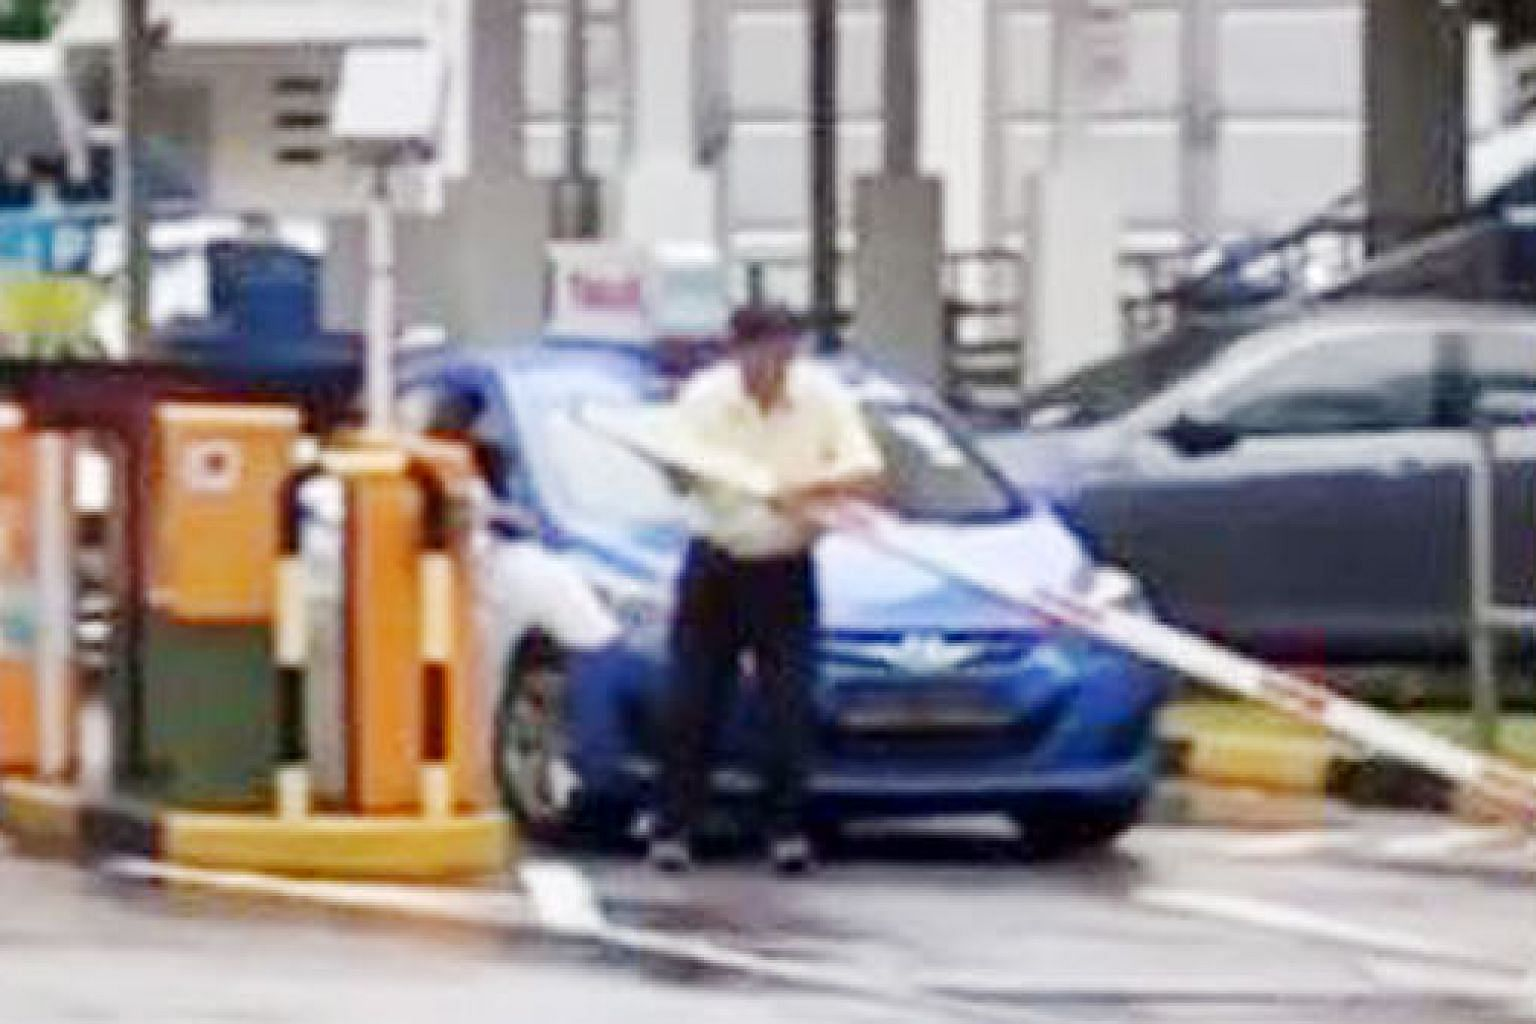 Screen grabs from the widely shared video show the taxi driver tugging at the barrier arm of the HDB carpark at Jurong East Street 32 before detaching it and throwing it on the side of the road.